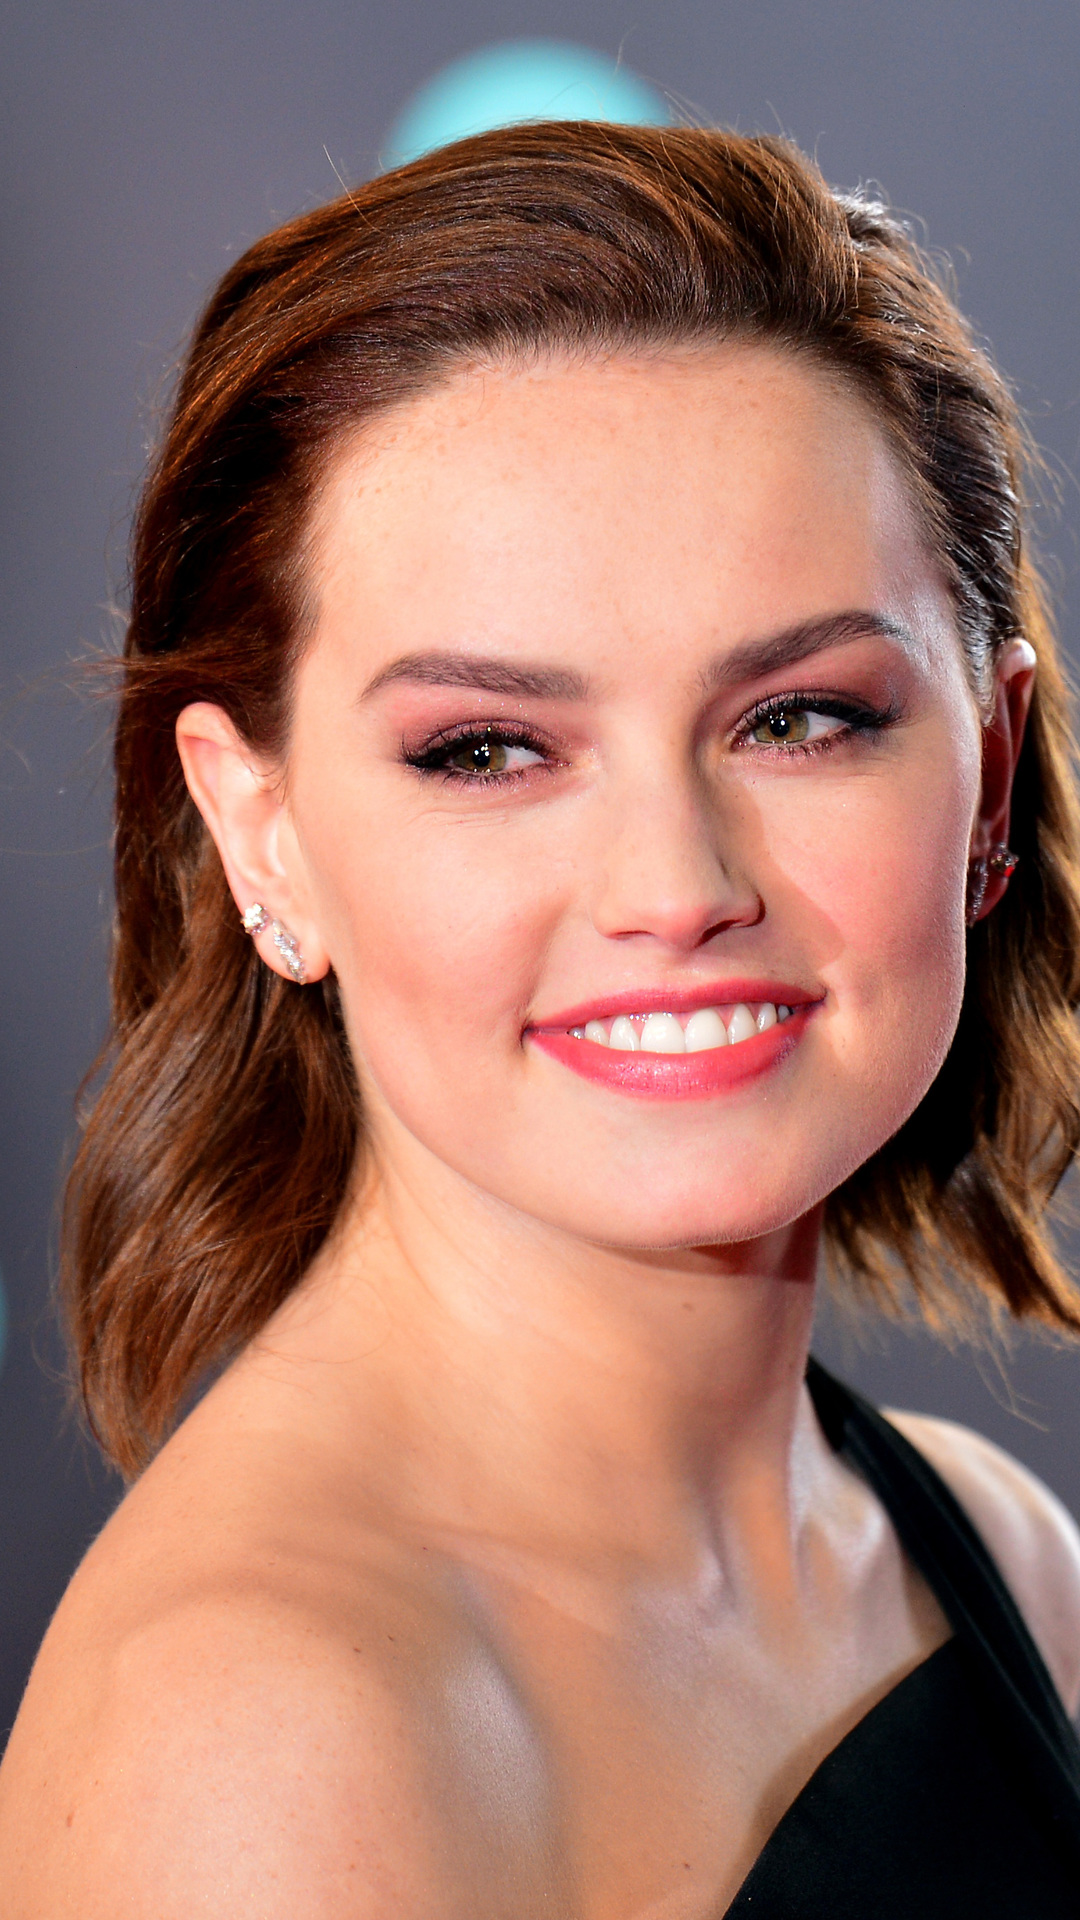 View Wallpaper Daisy Ridley Smile Background